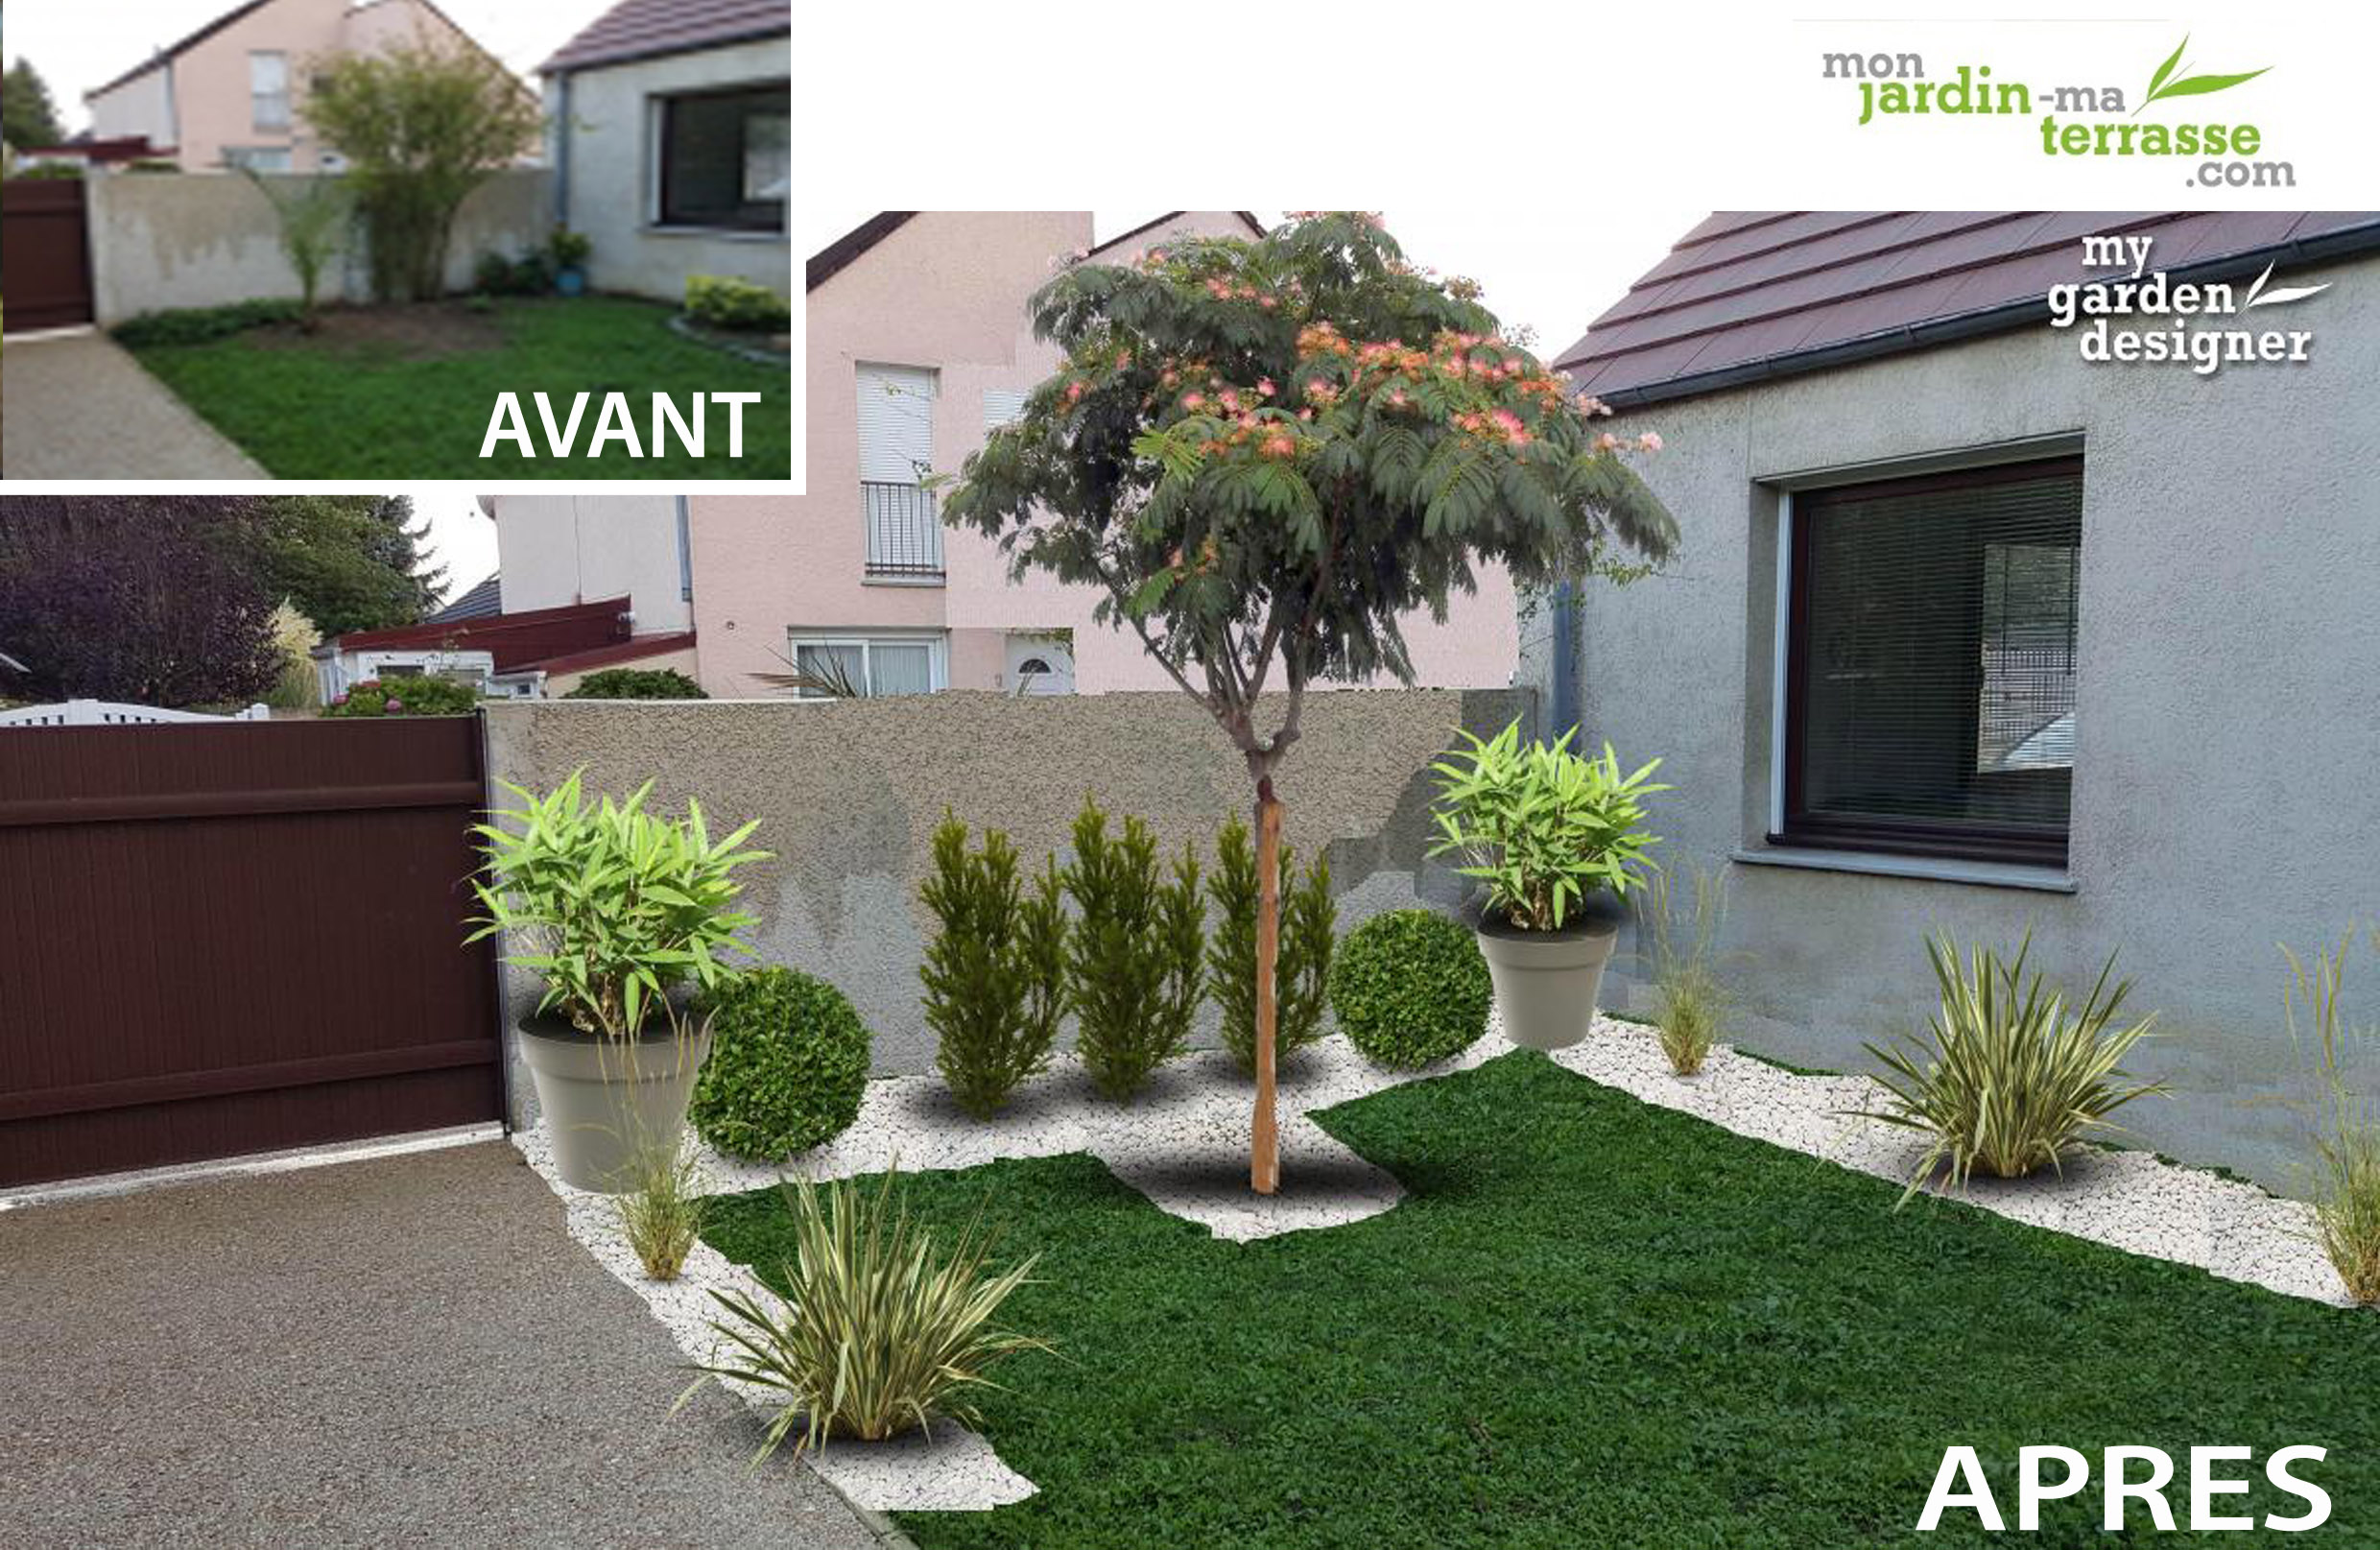 Am nager un petit jardin de 30m monjardin for Ammenagement jardin